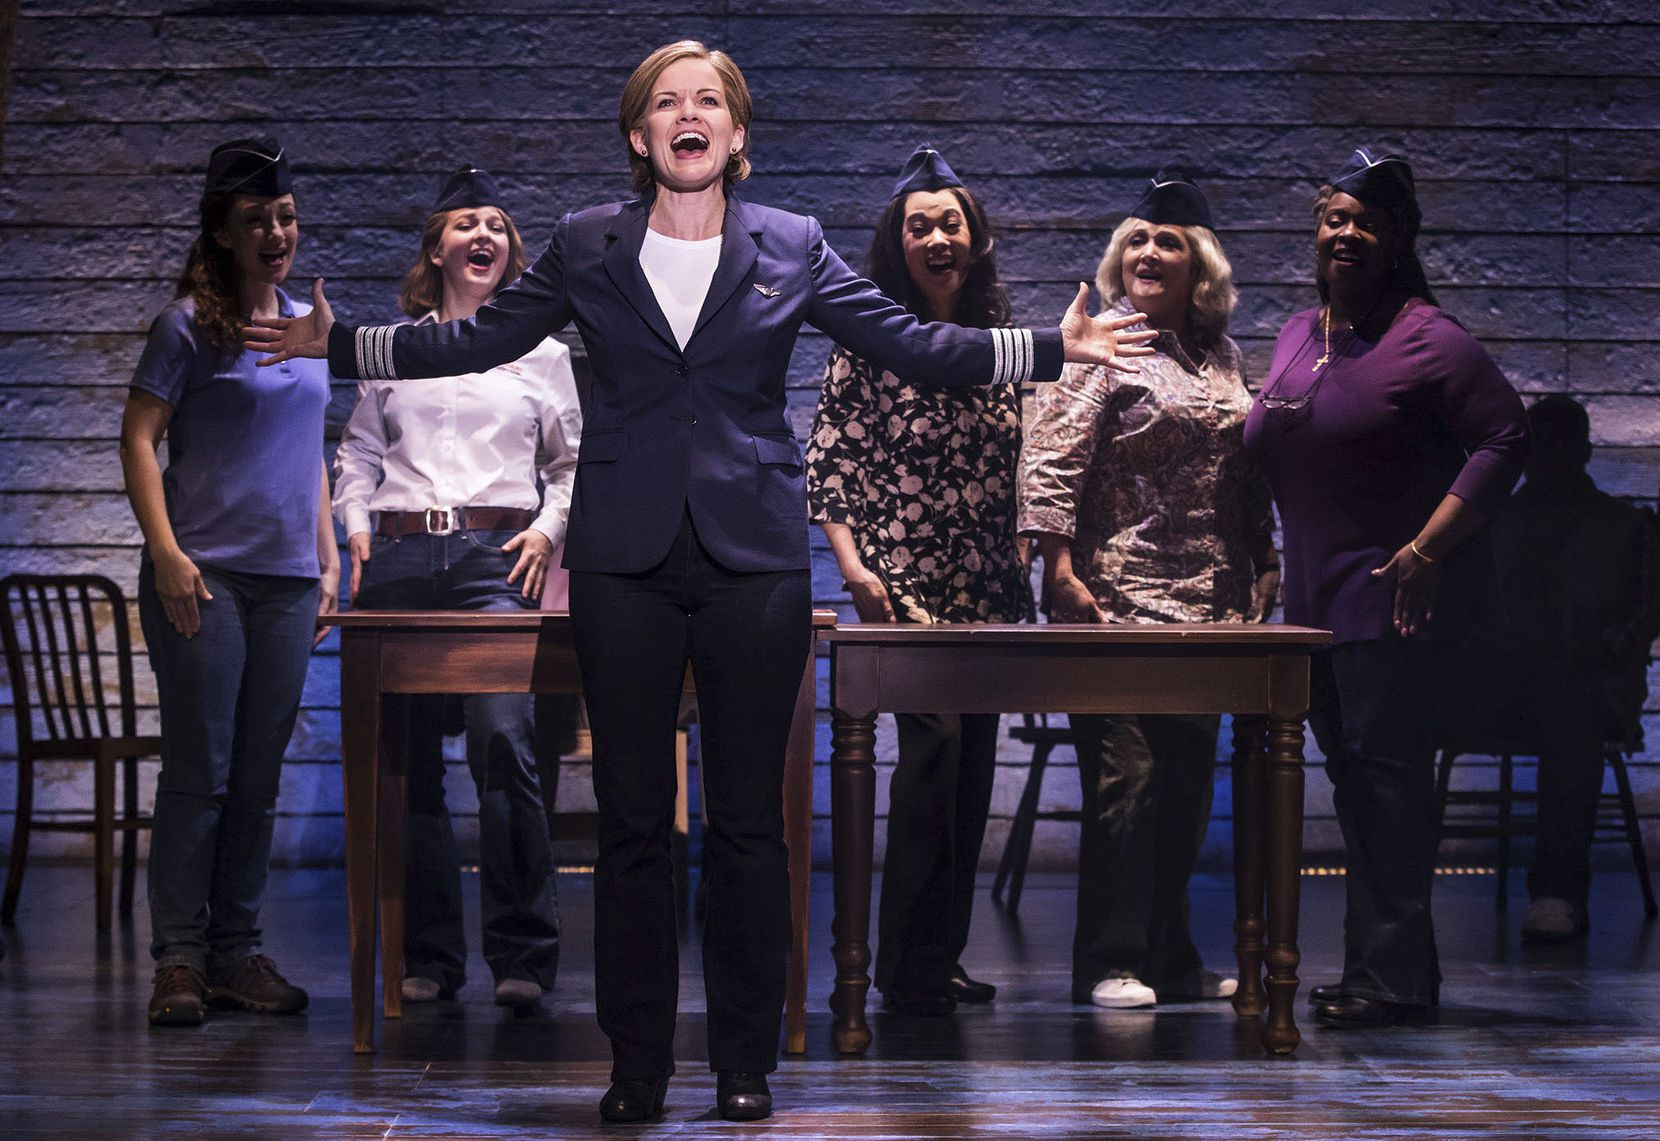 A scene from Come from Away, which is coming to Bass Performance Hall in Fort Worth. The photo, taken in 2018 during the first North American tour of the show, shows Becky Gulsvig (front center) and (background, from left) Megan McGinnis, Emily Walton, Christine Toy Johnson, Julie Johnson and Daniele K. Thomas.